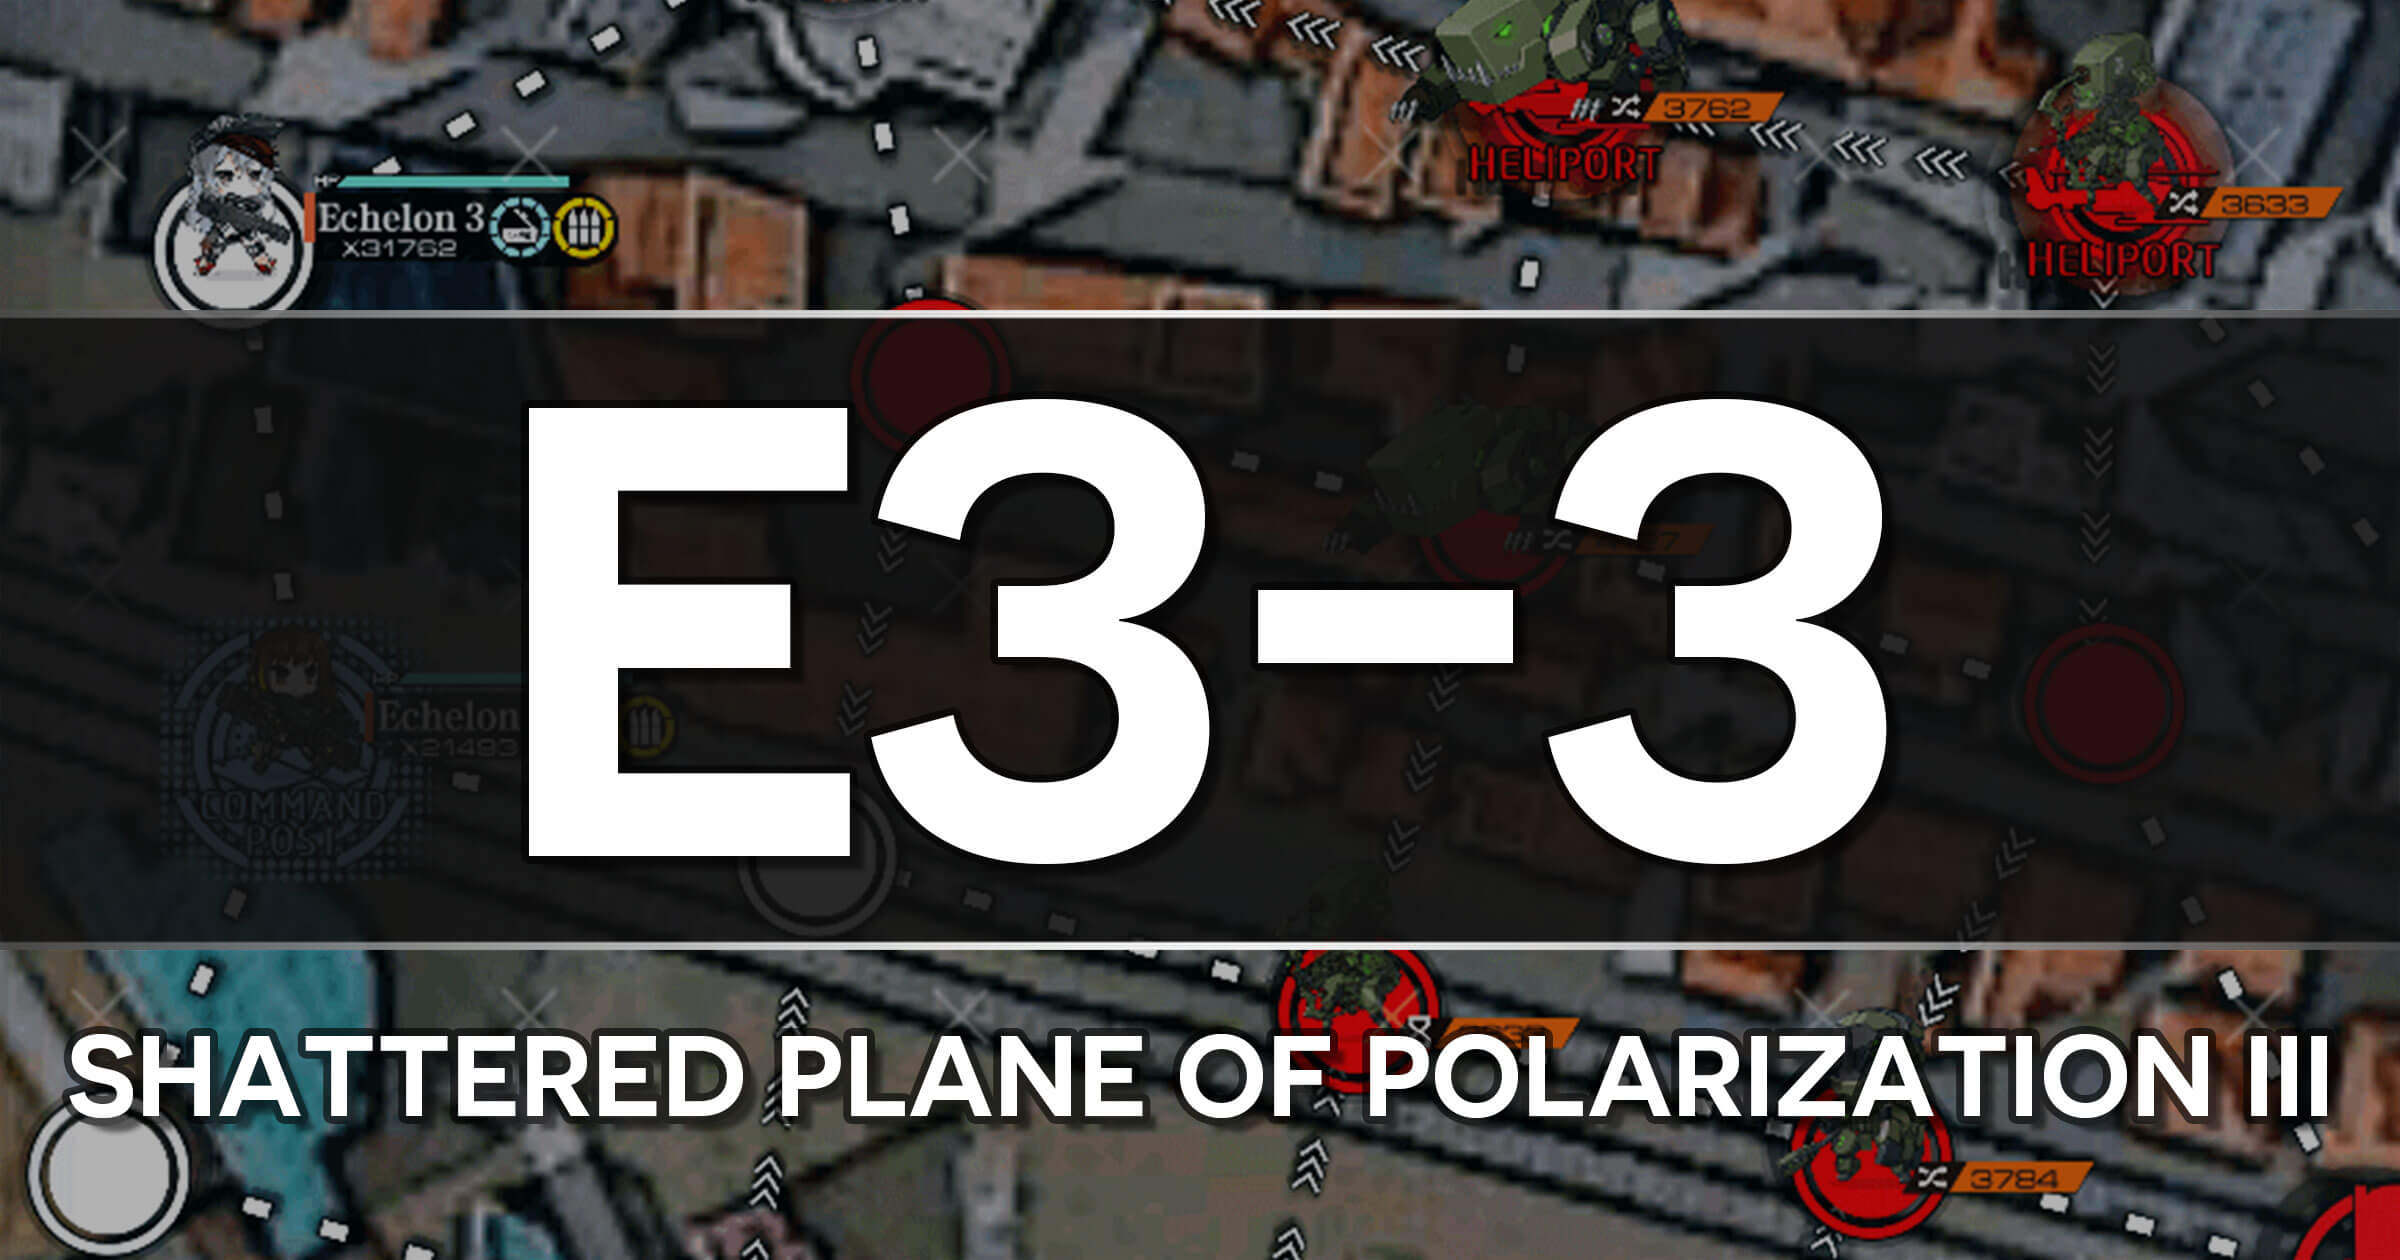 A guide to the Girls Frontline Polarized Light Event stage E3-3: Shattered Plane of Polarization III